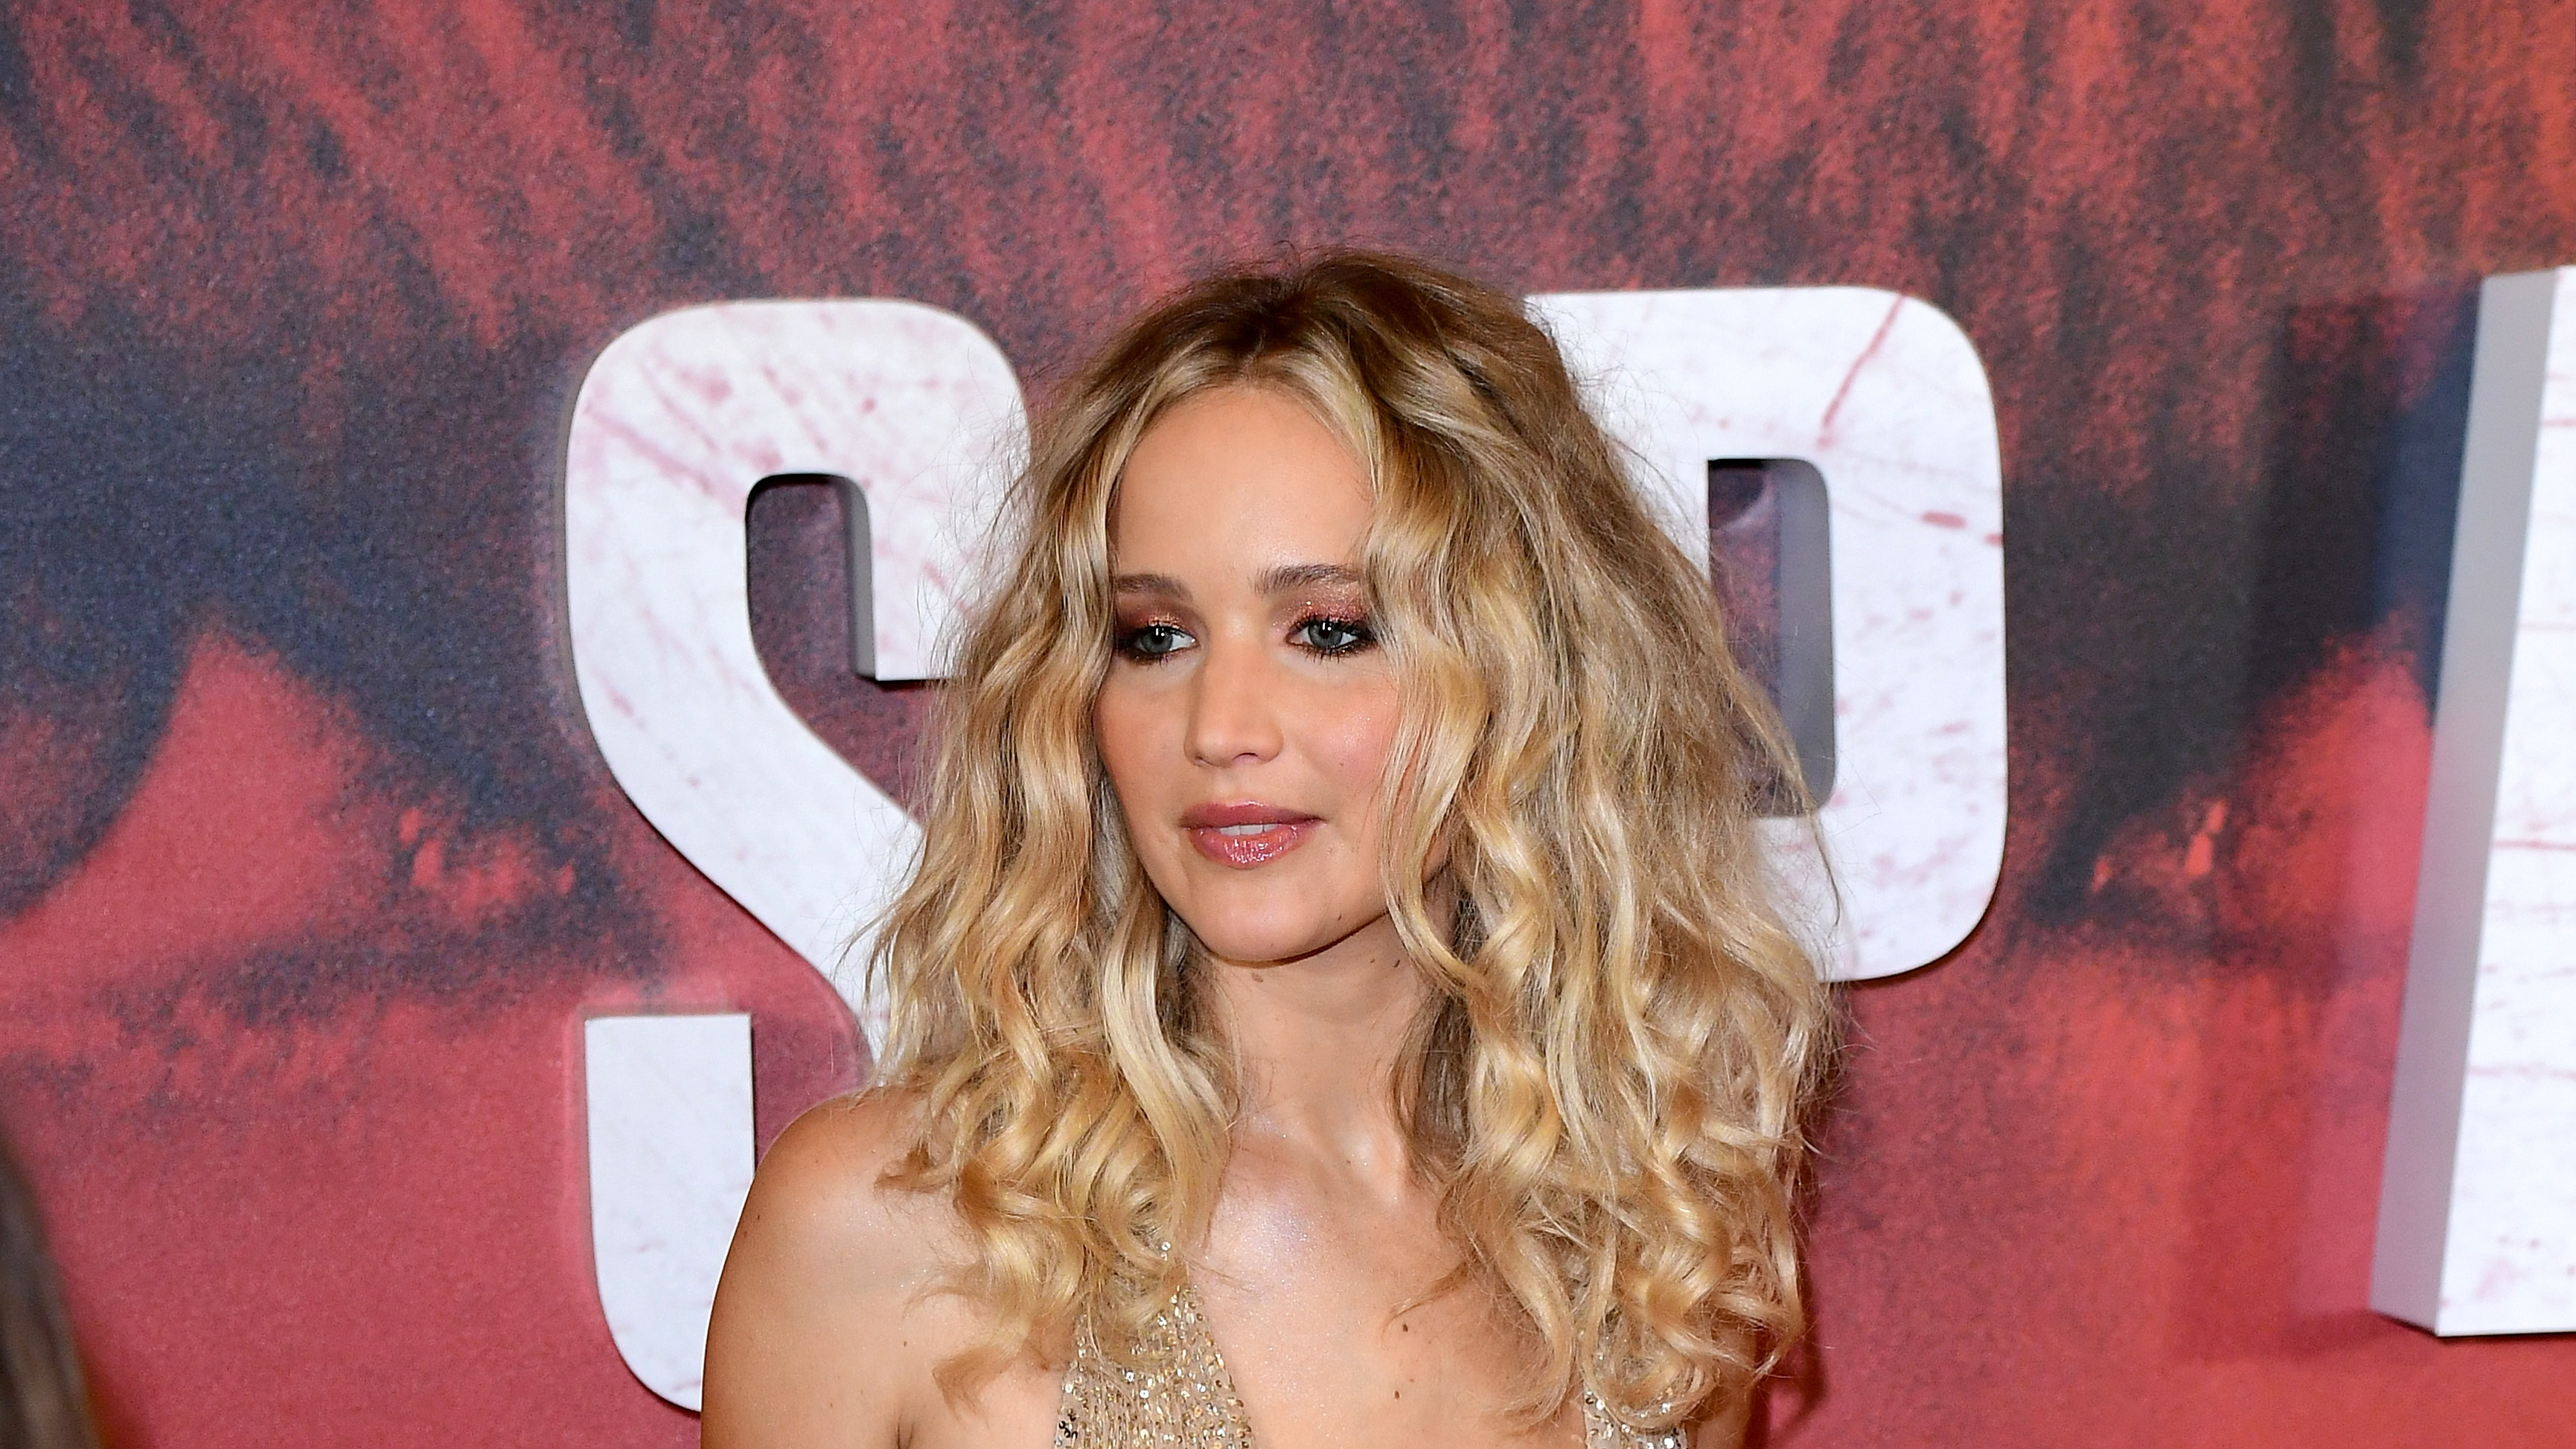 Actress Jennifer Lawrence engaged to art gallery director